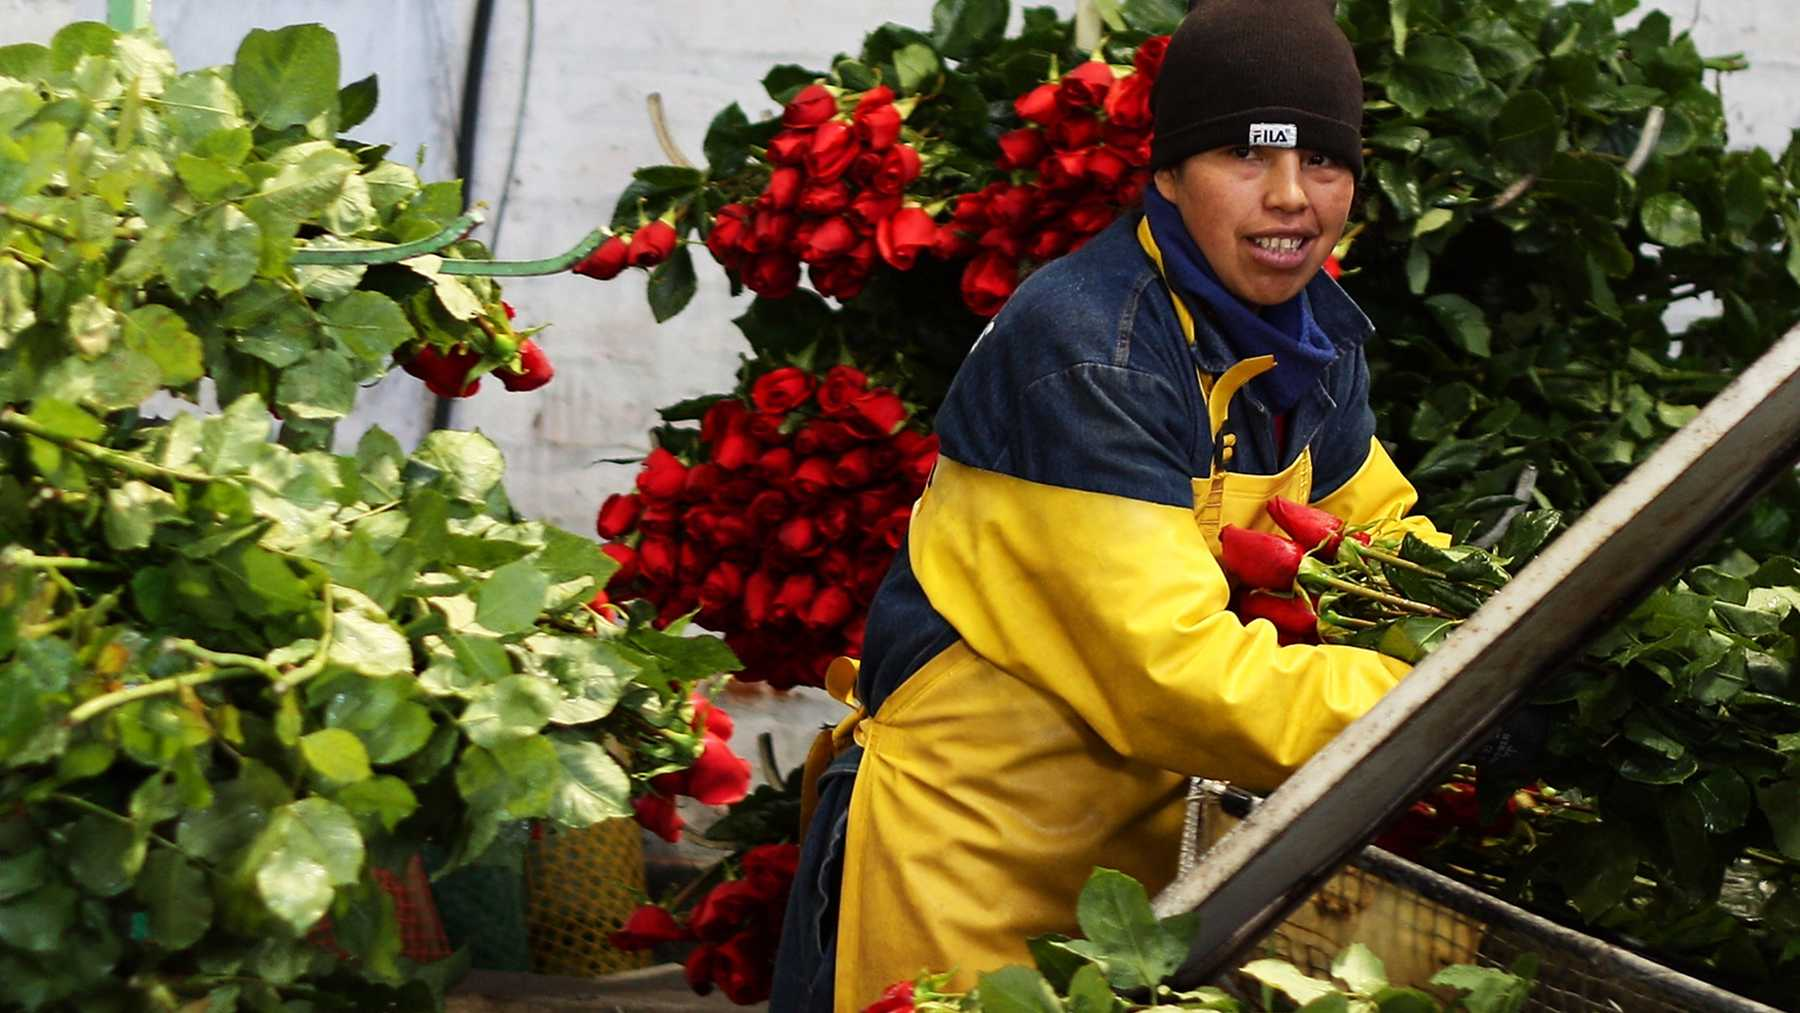 A farm worker trims roses.